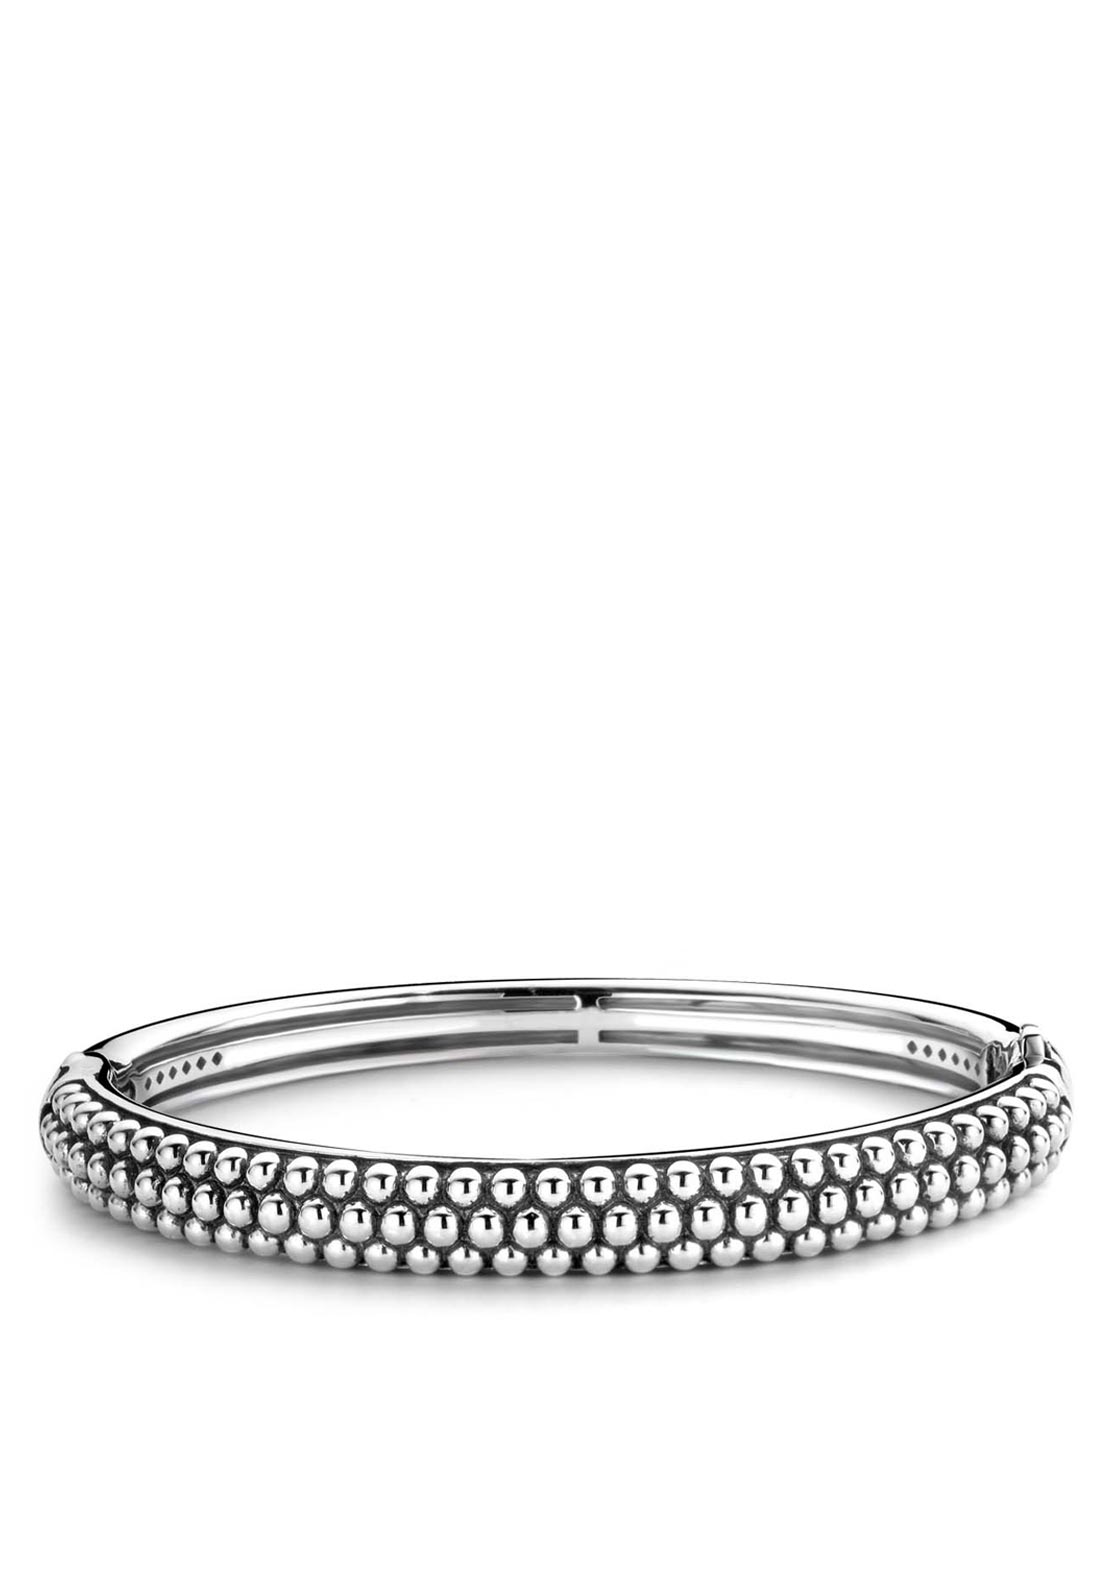 Ti Sento Milano Sterling Silver Bracelet with Beading Design